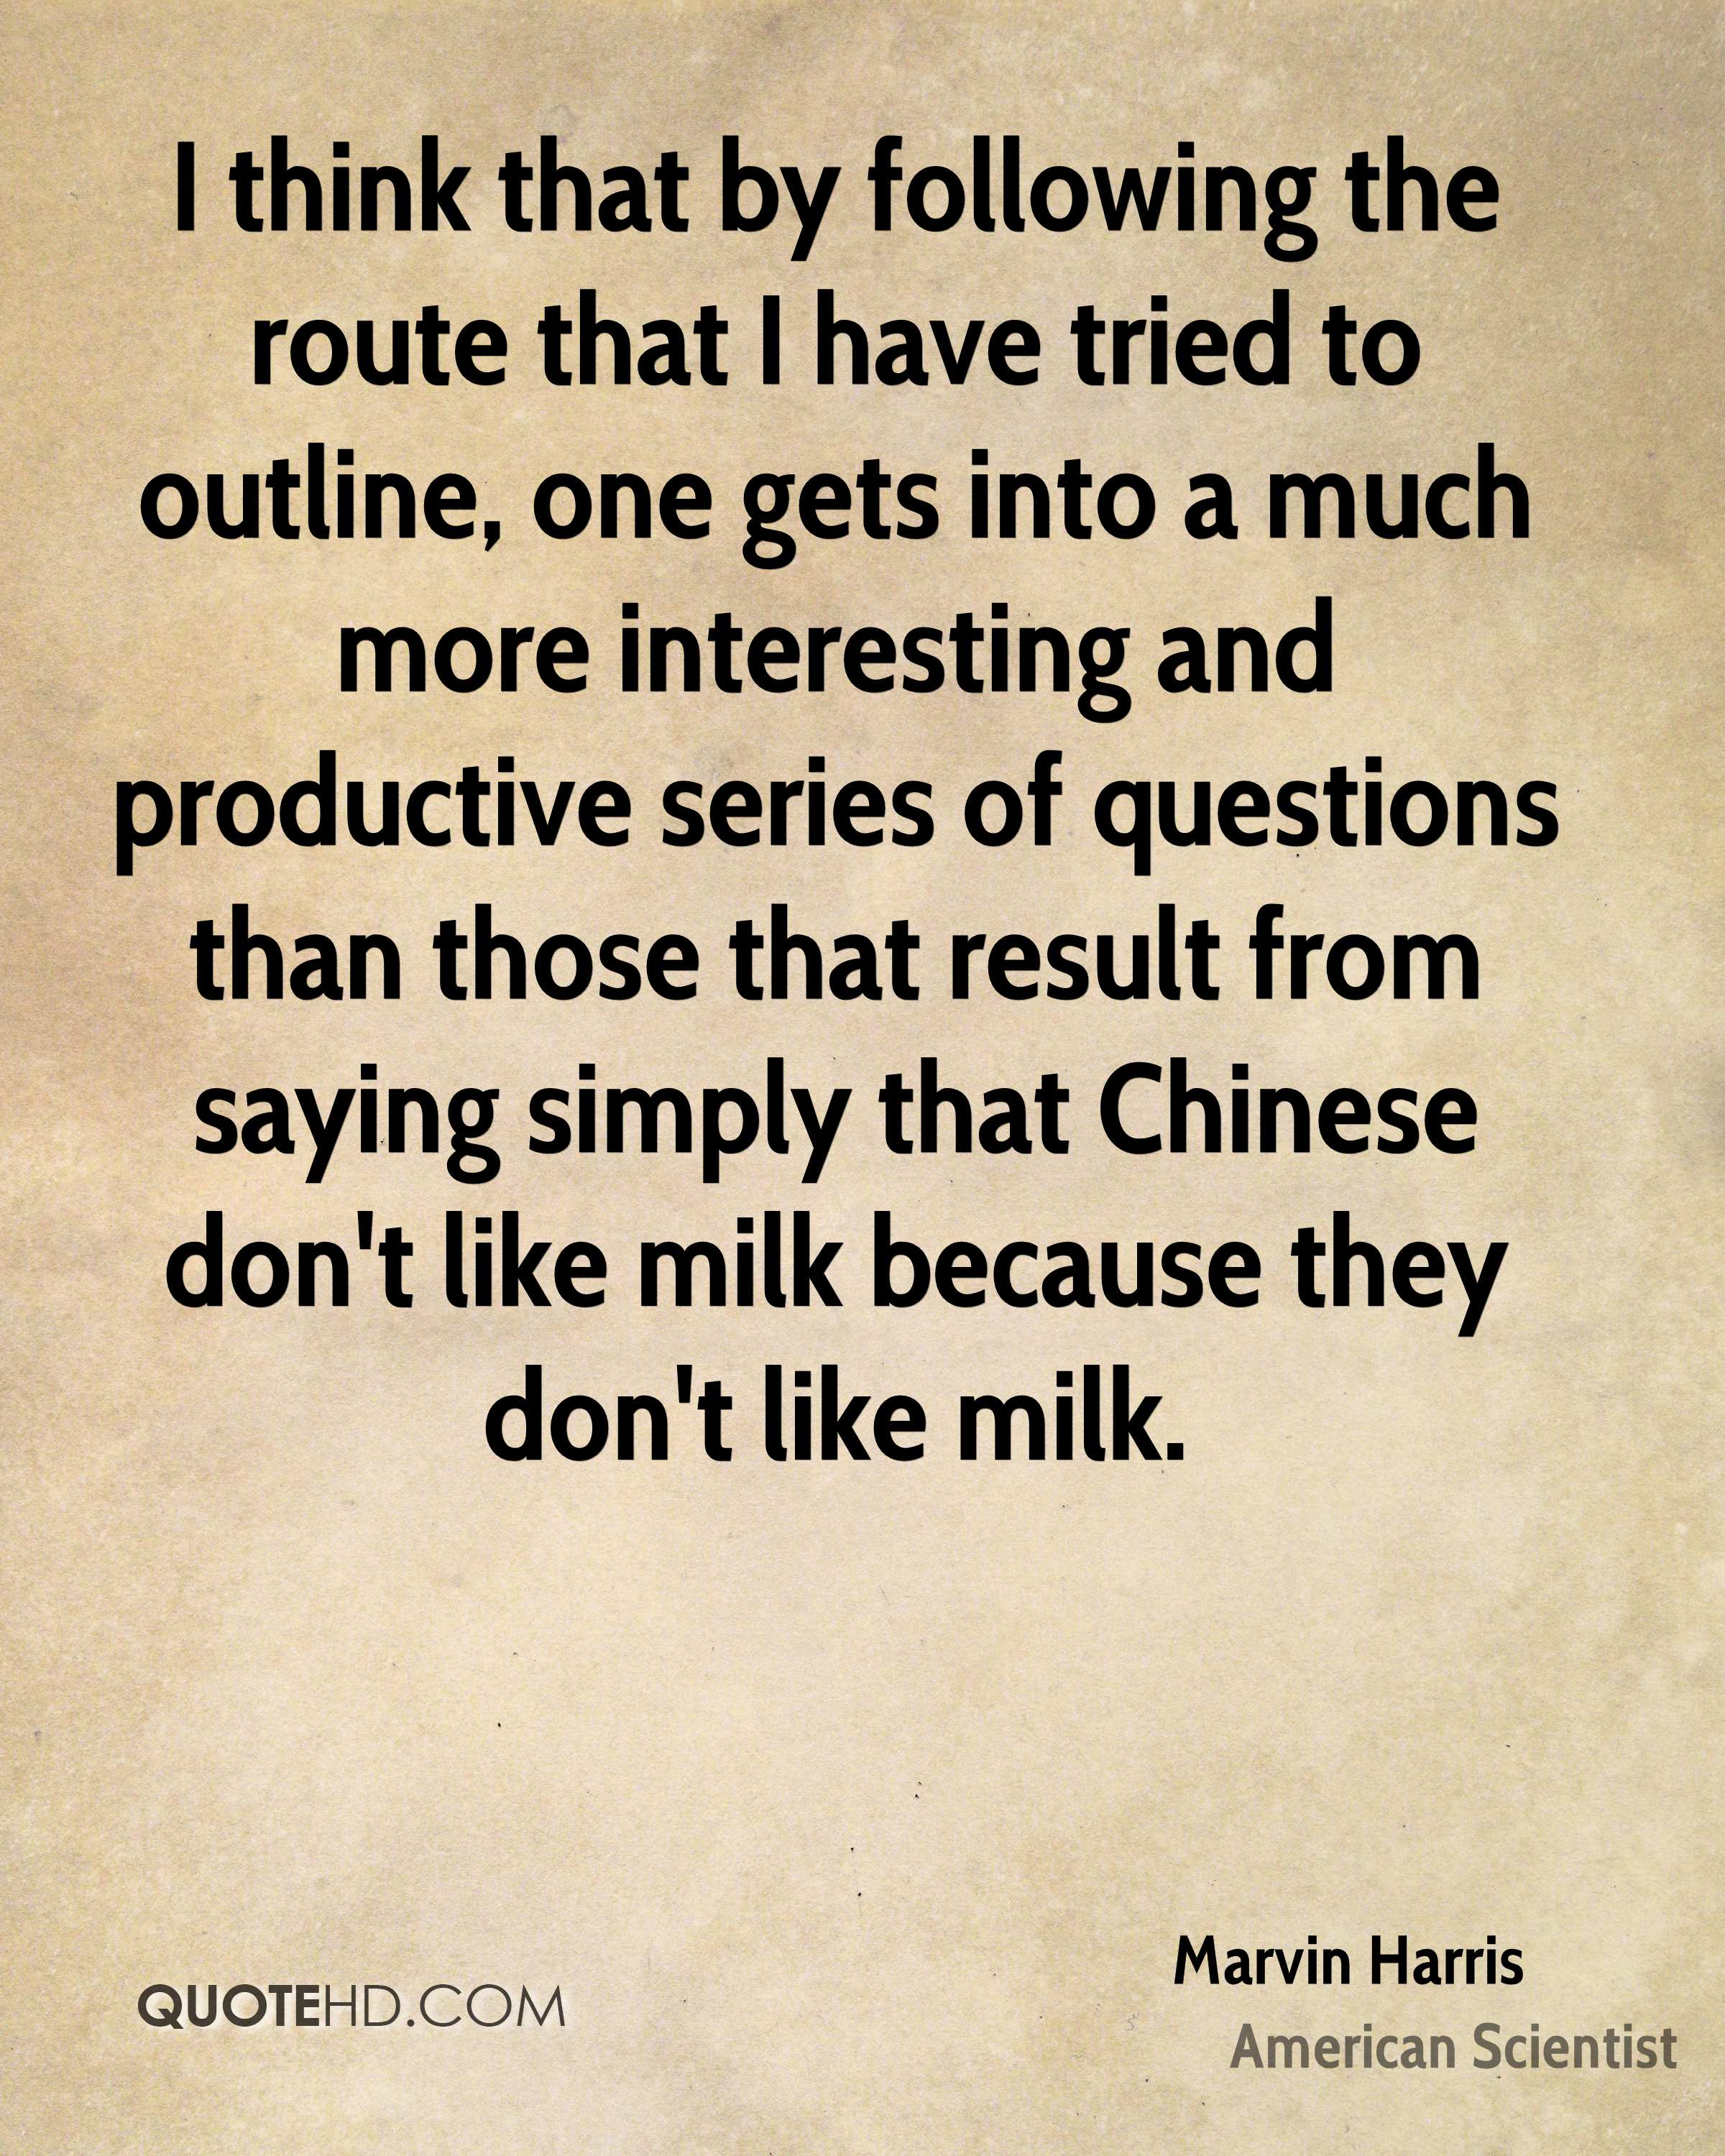 I think that by following the route that I have tried to outline, one gets into a much more interesting and productive series of questions than those that result from saying simply that Chinese don't like milk because they don't like milk.